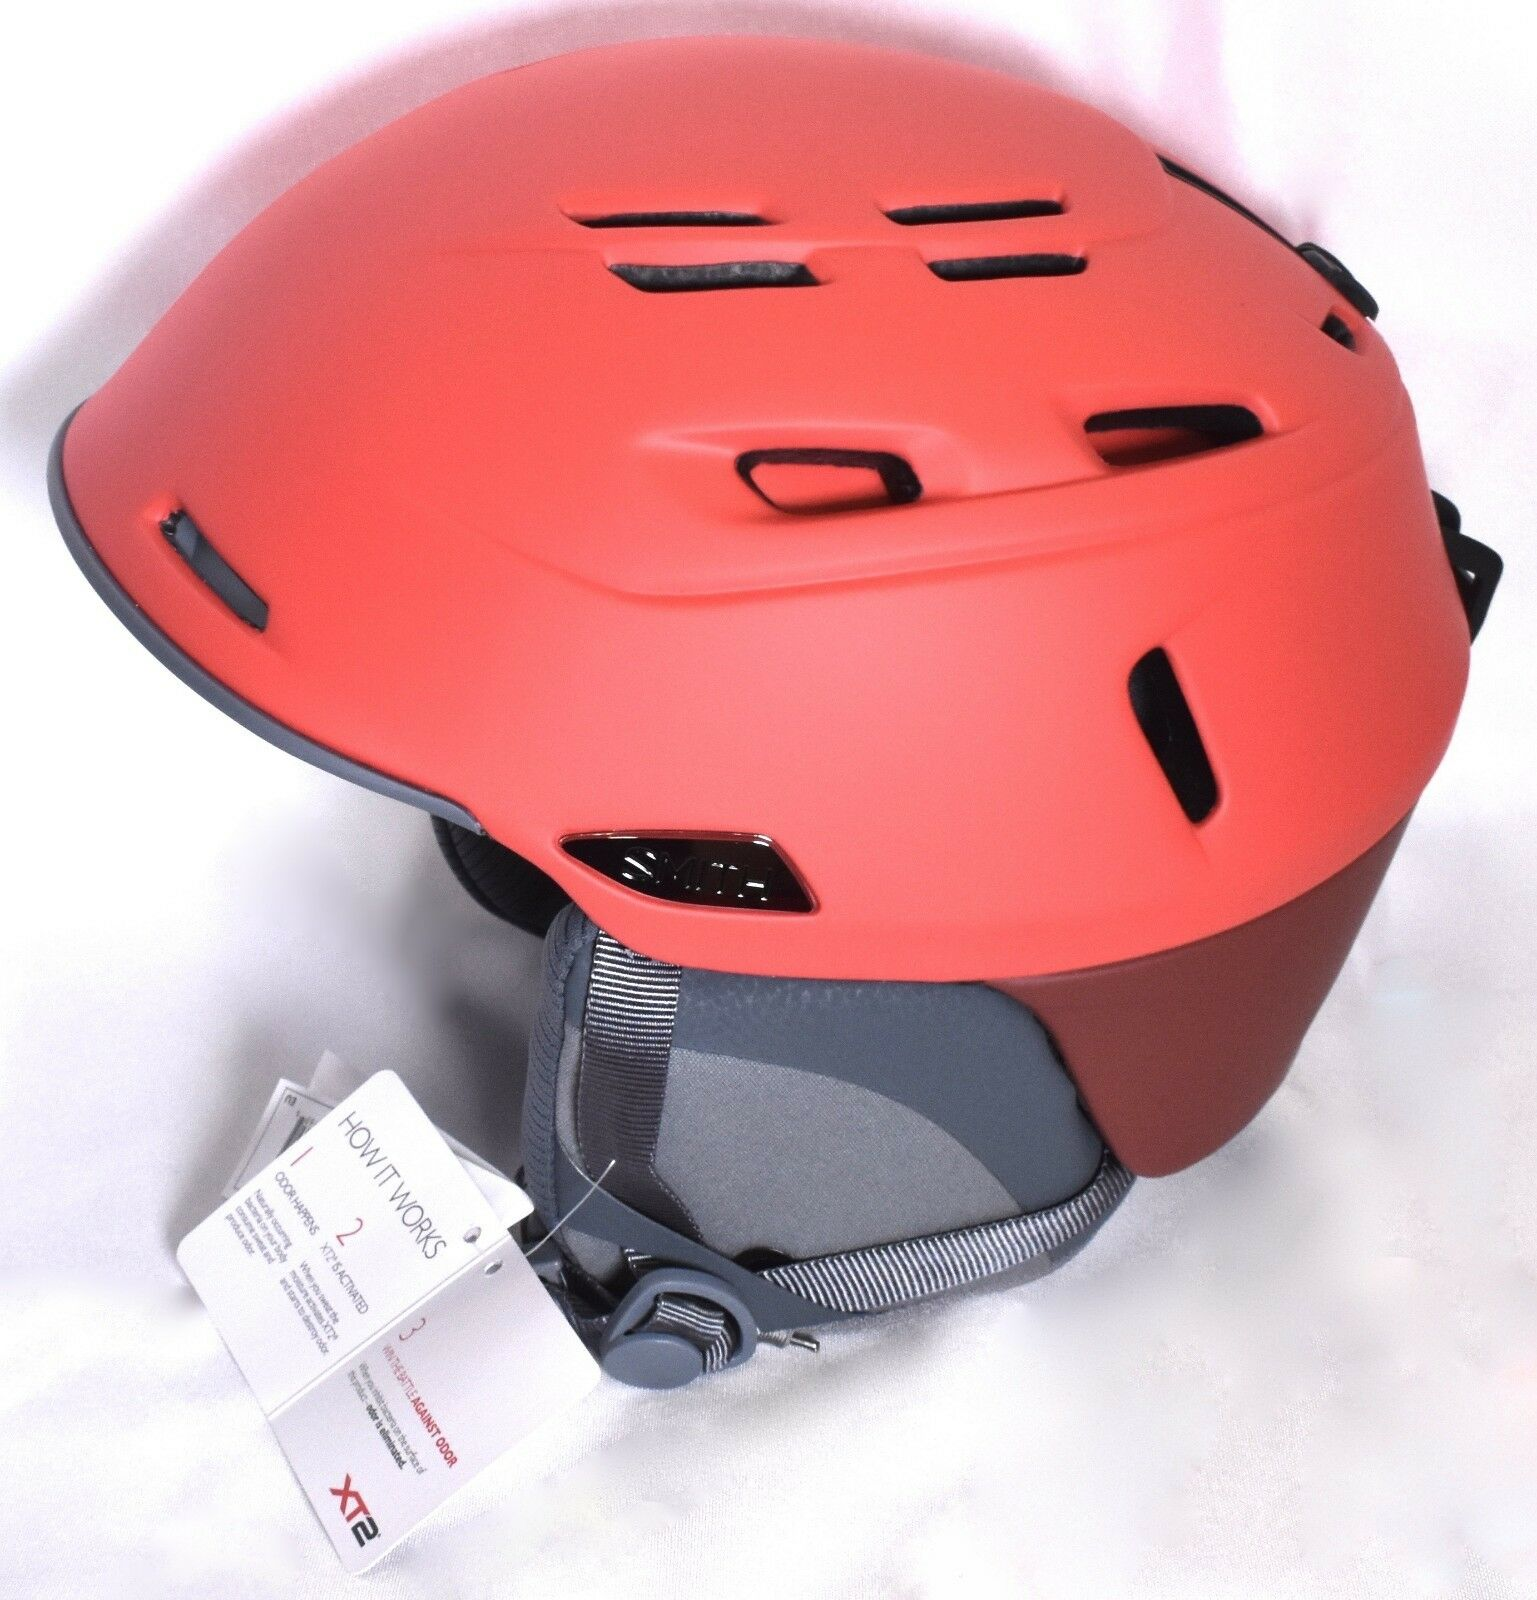 SMITH Camber Adult Snow Sports  Helmet (Size L 59-63 cm) Matte Rise Red  NEW  for sale online